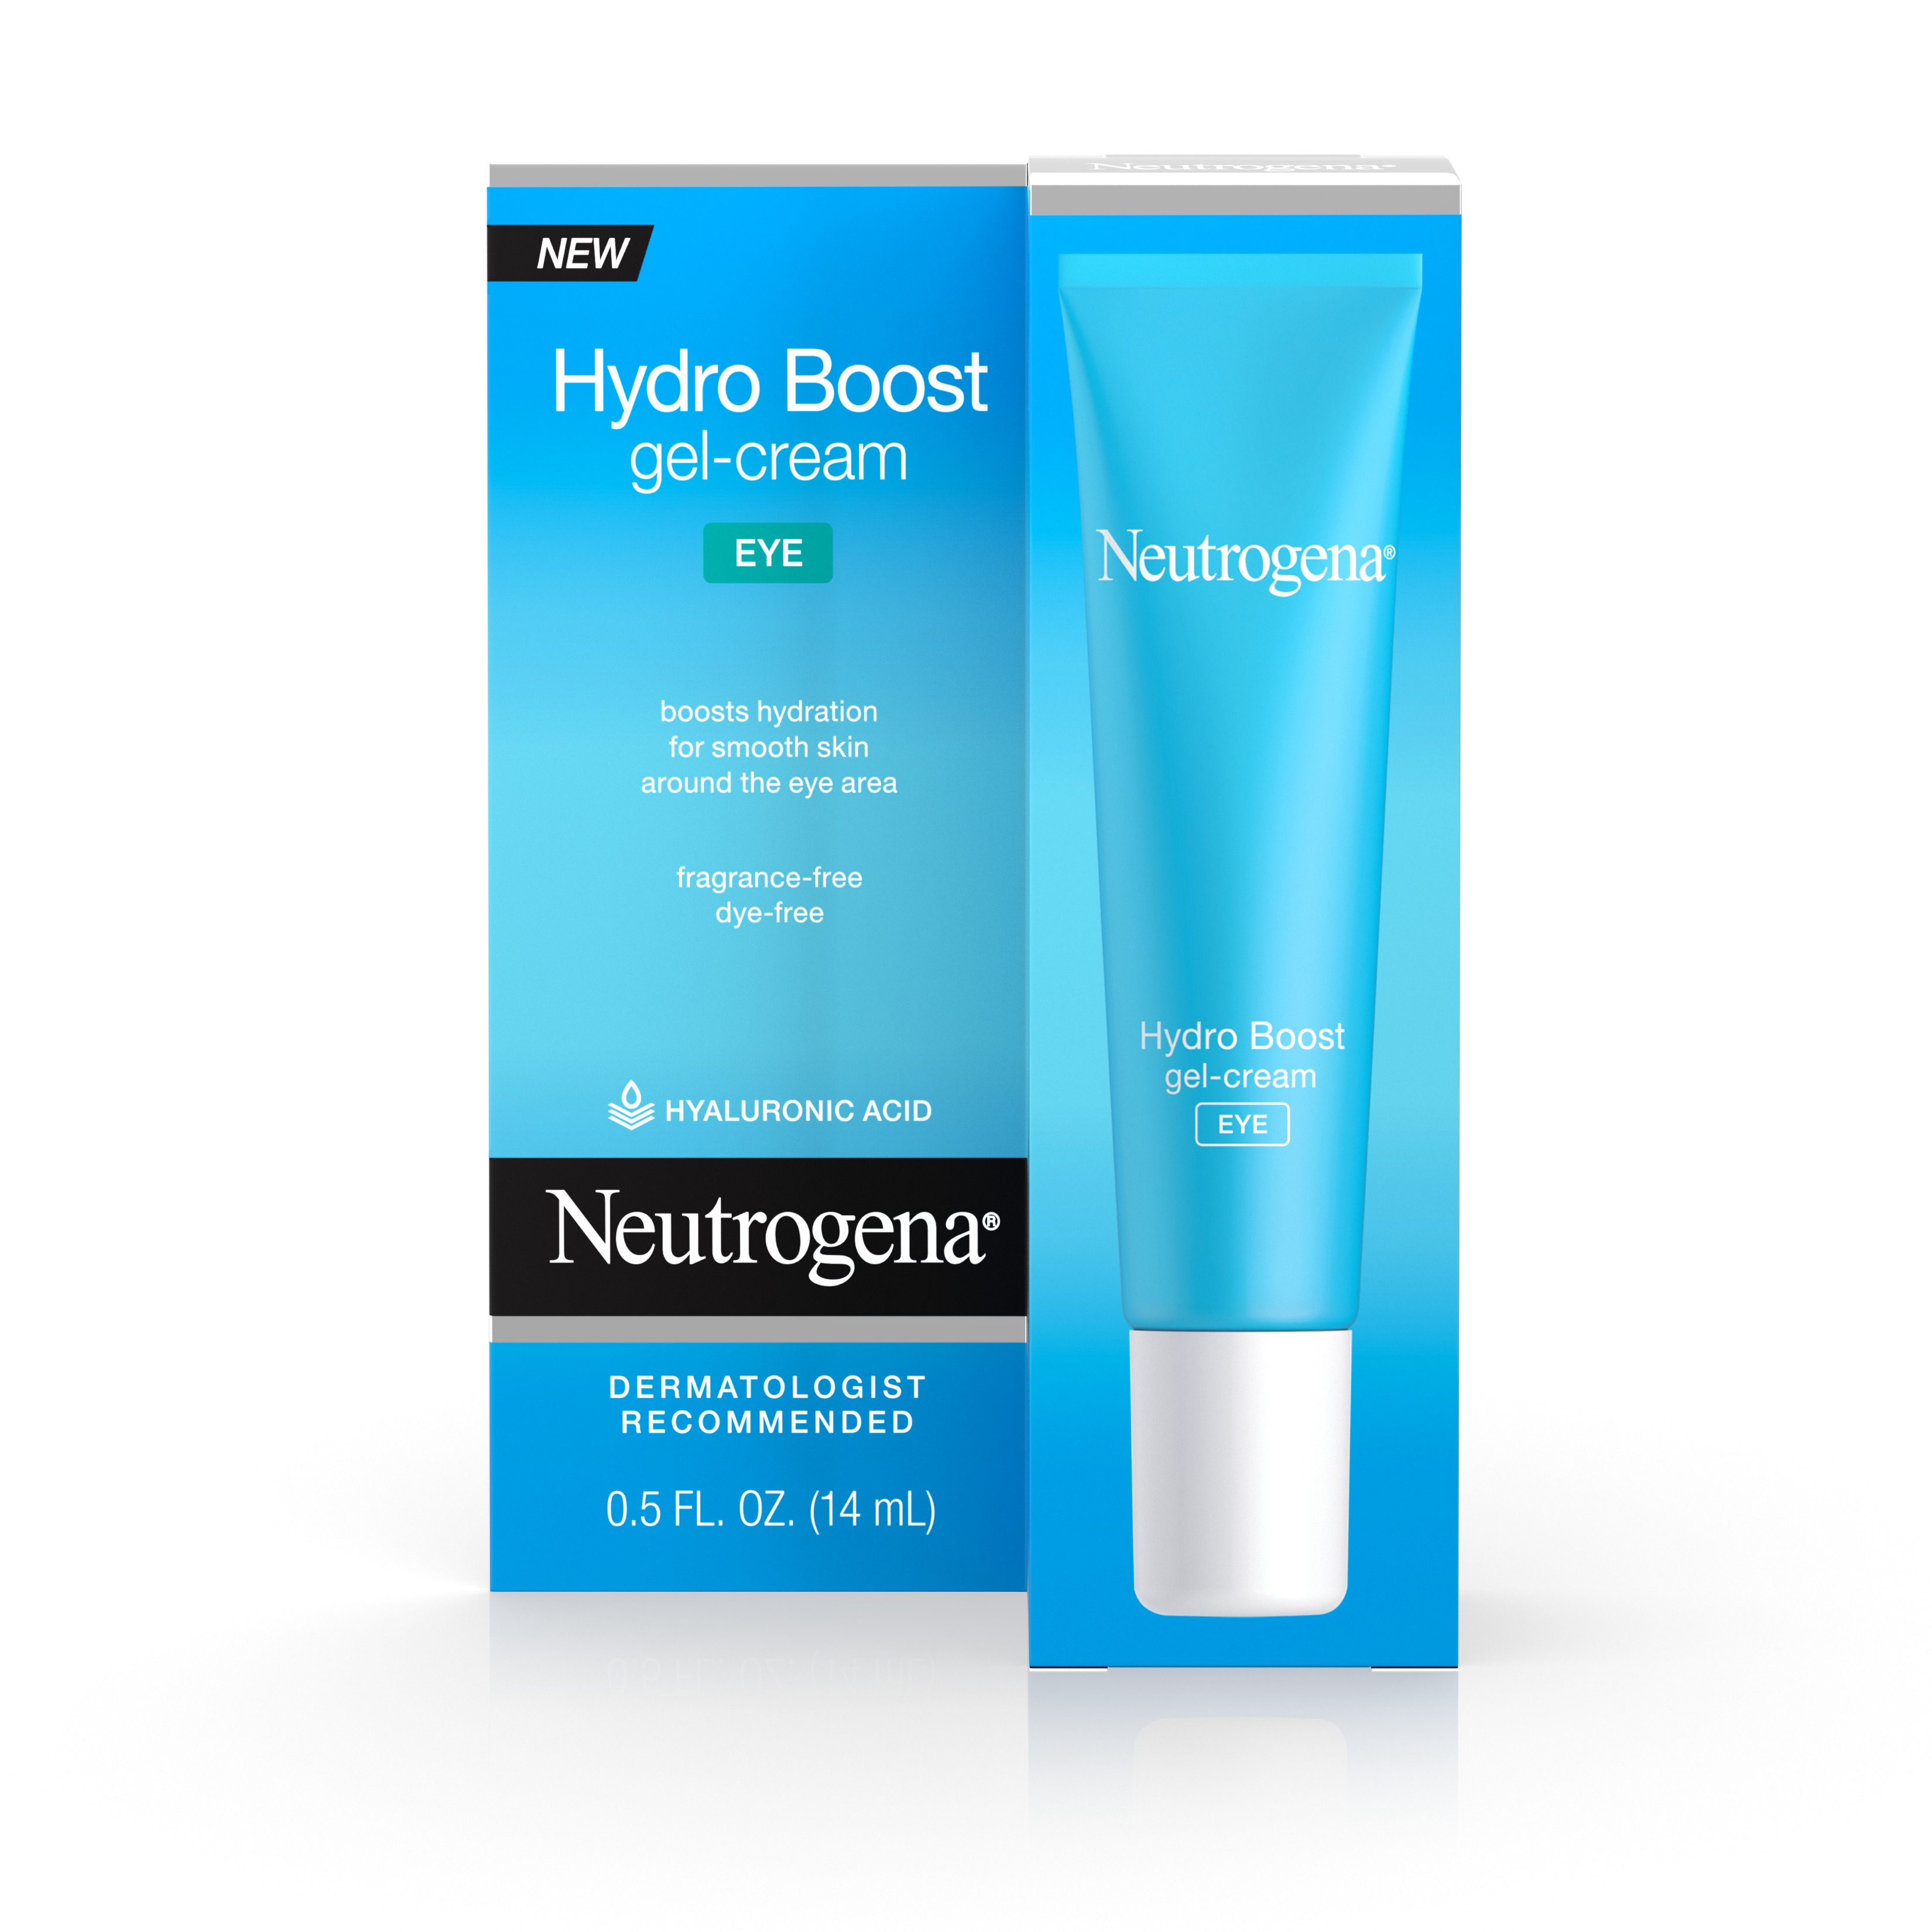 Neutrogena Hydro Boost Eye Gel-Cream, 0.5 Fl. Oz